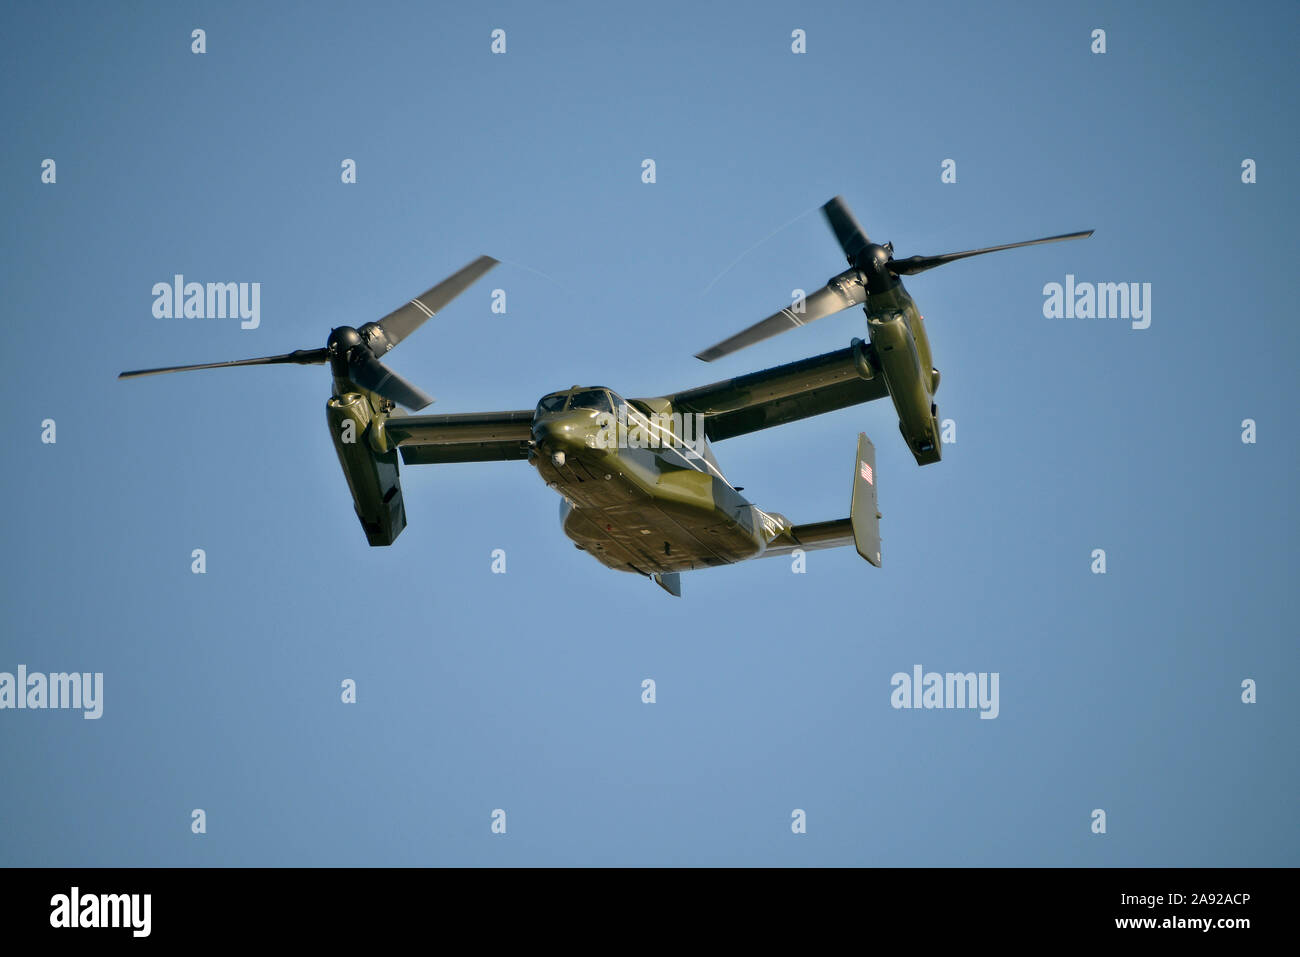 Helicopter Bell-Boing V-22 Osprey, tiltrotor, convertible airplane, US Airforce over Playa del Rey, Los Angeles, California, USA Stock Photo